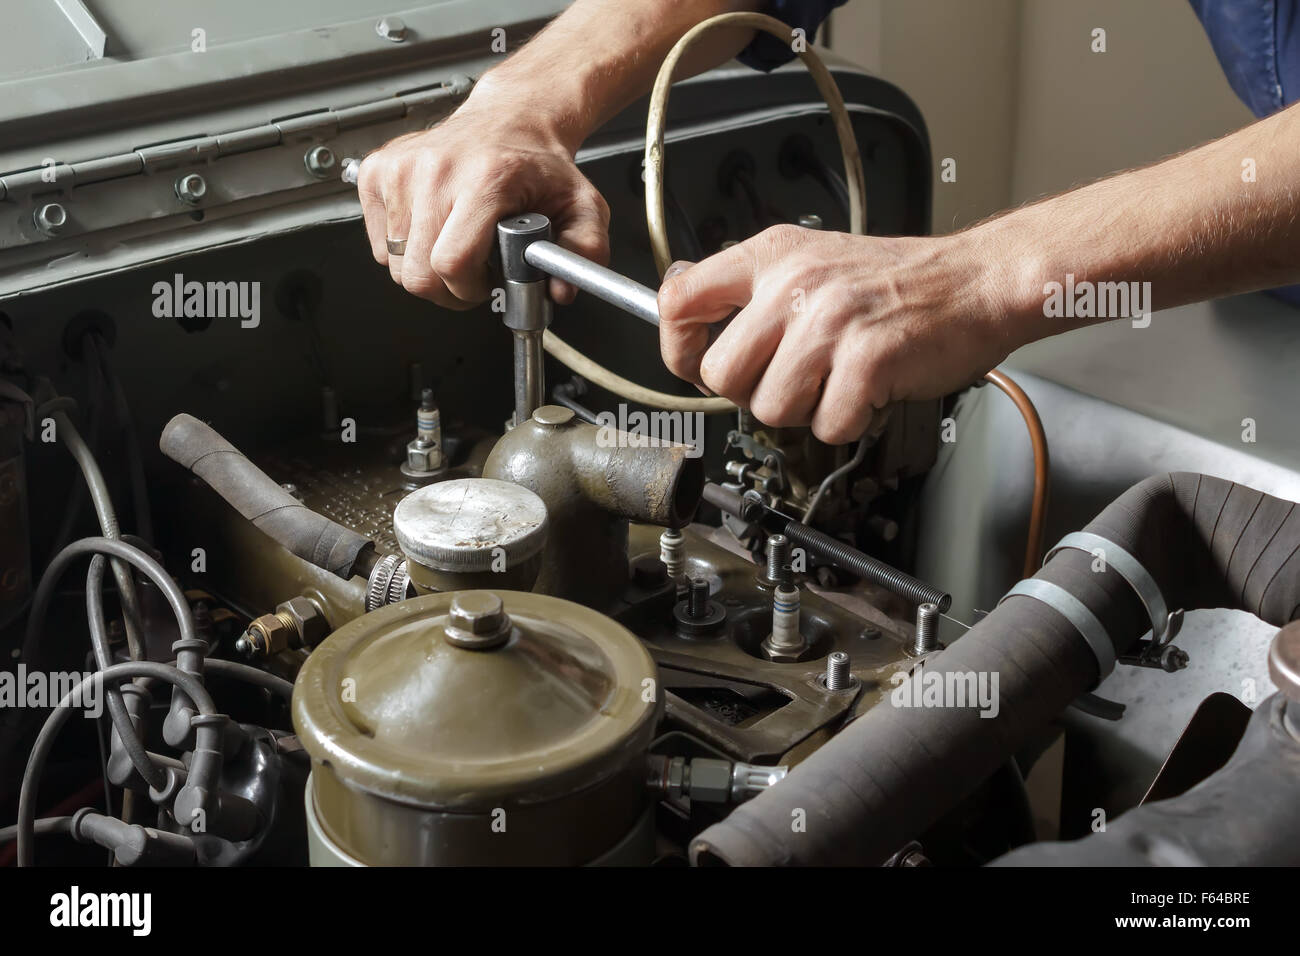 Auto mechanic working under the hood of an old car engine. Stock Photo